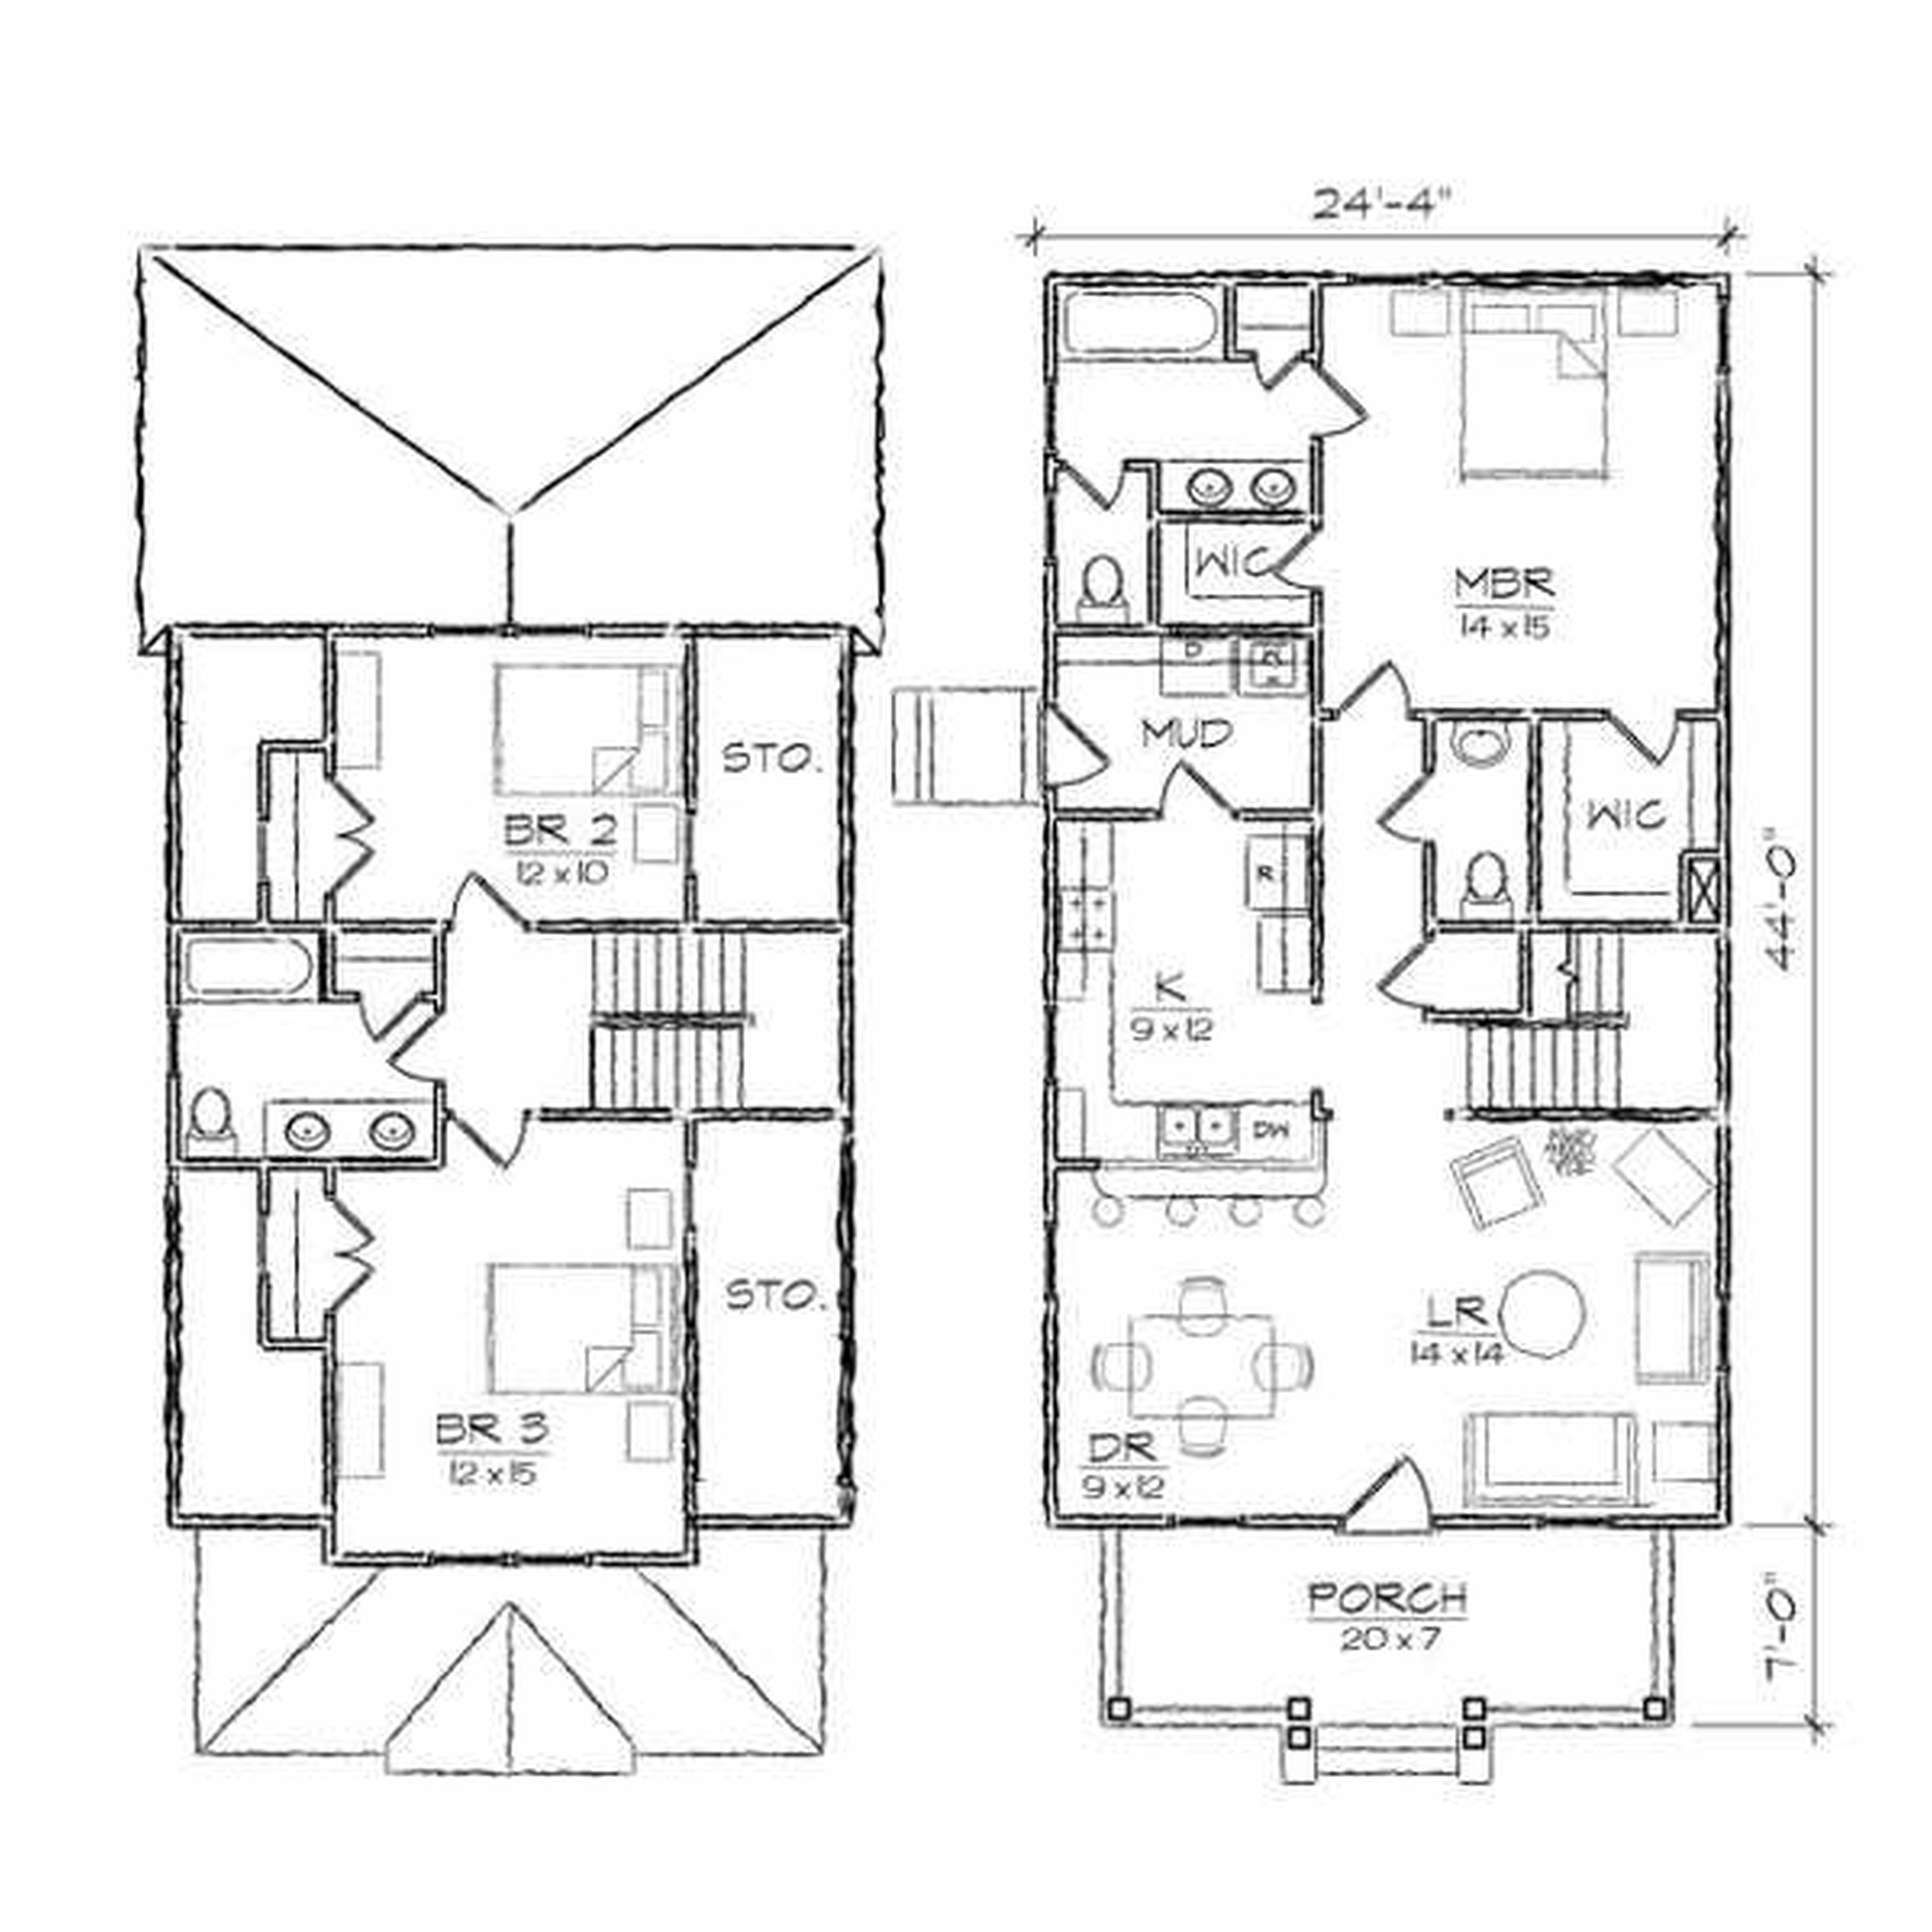 Architect scale drawing at getdrawings free for personal use 5000x5000 how to draw a floor plan in simple steps be inspired sippdrawing malvernweather Image collections